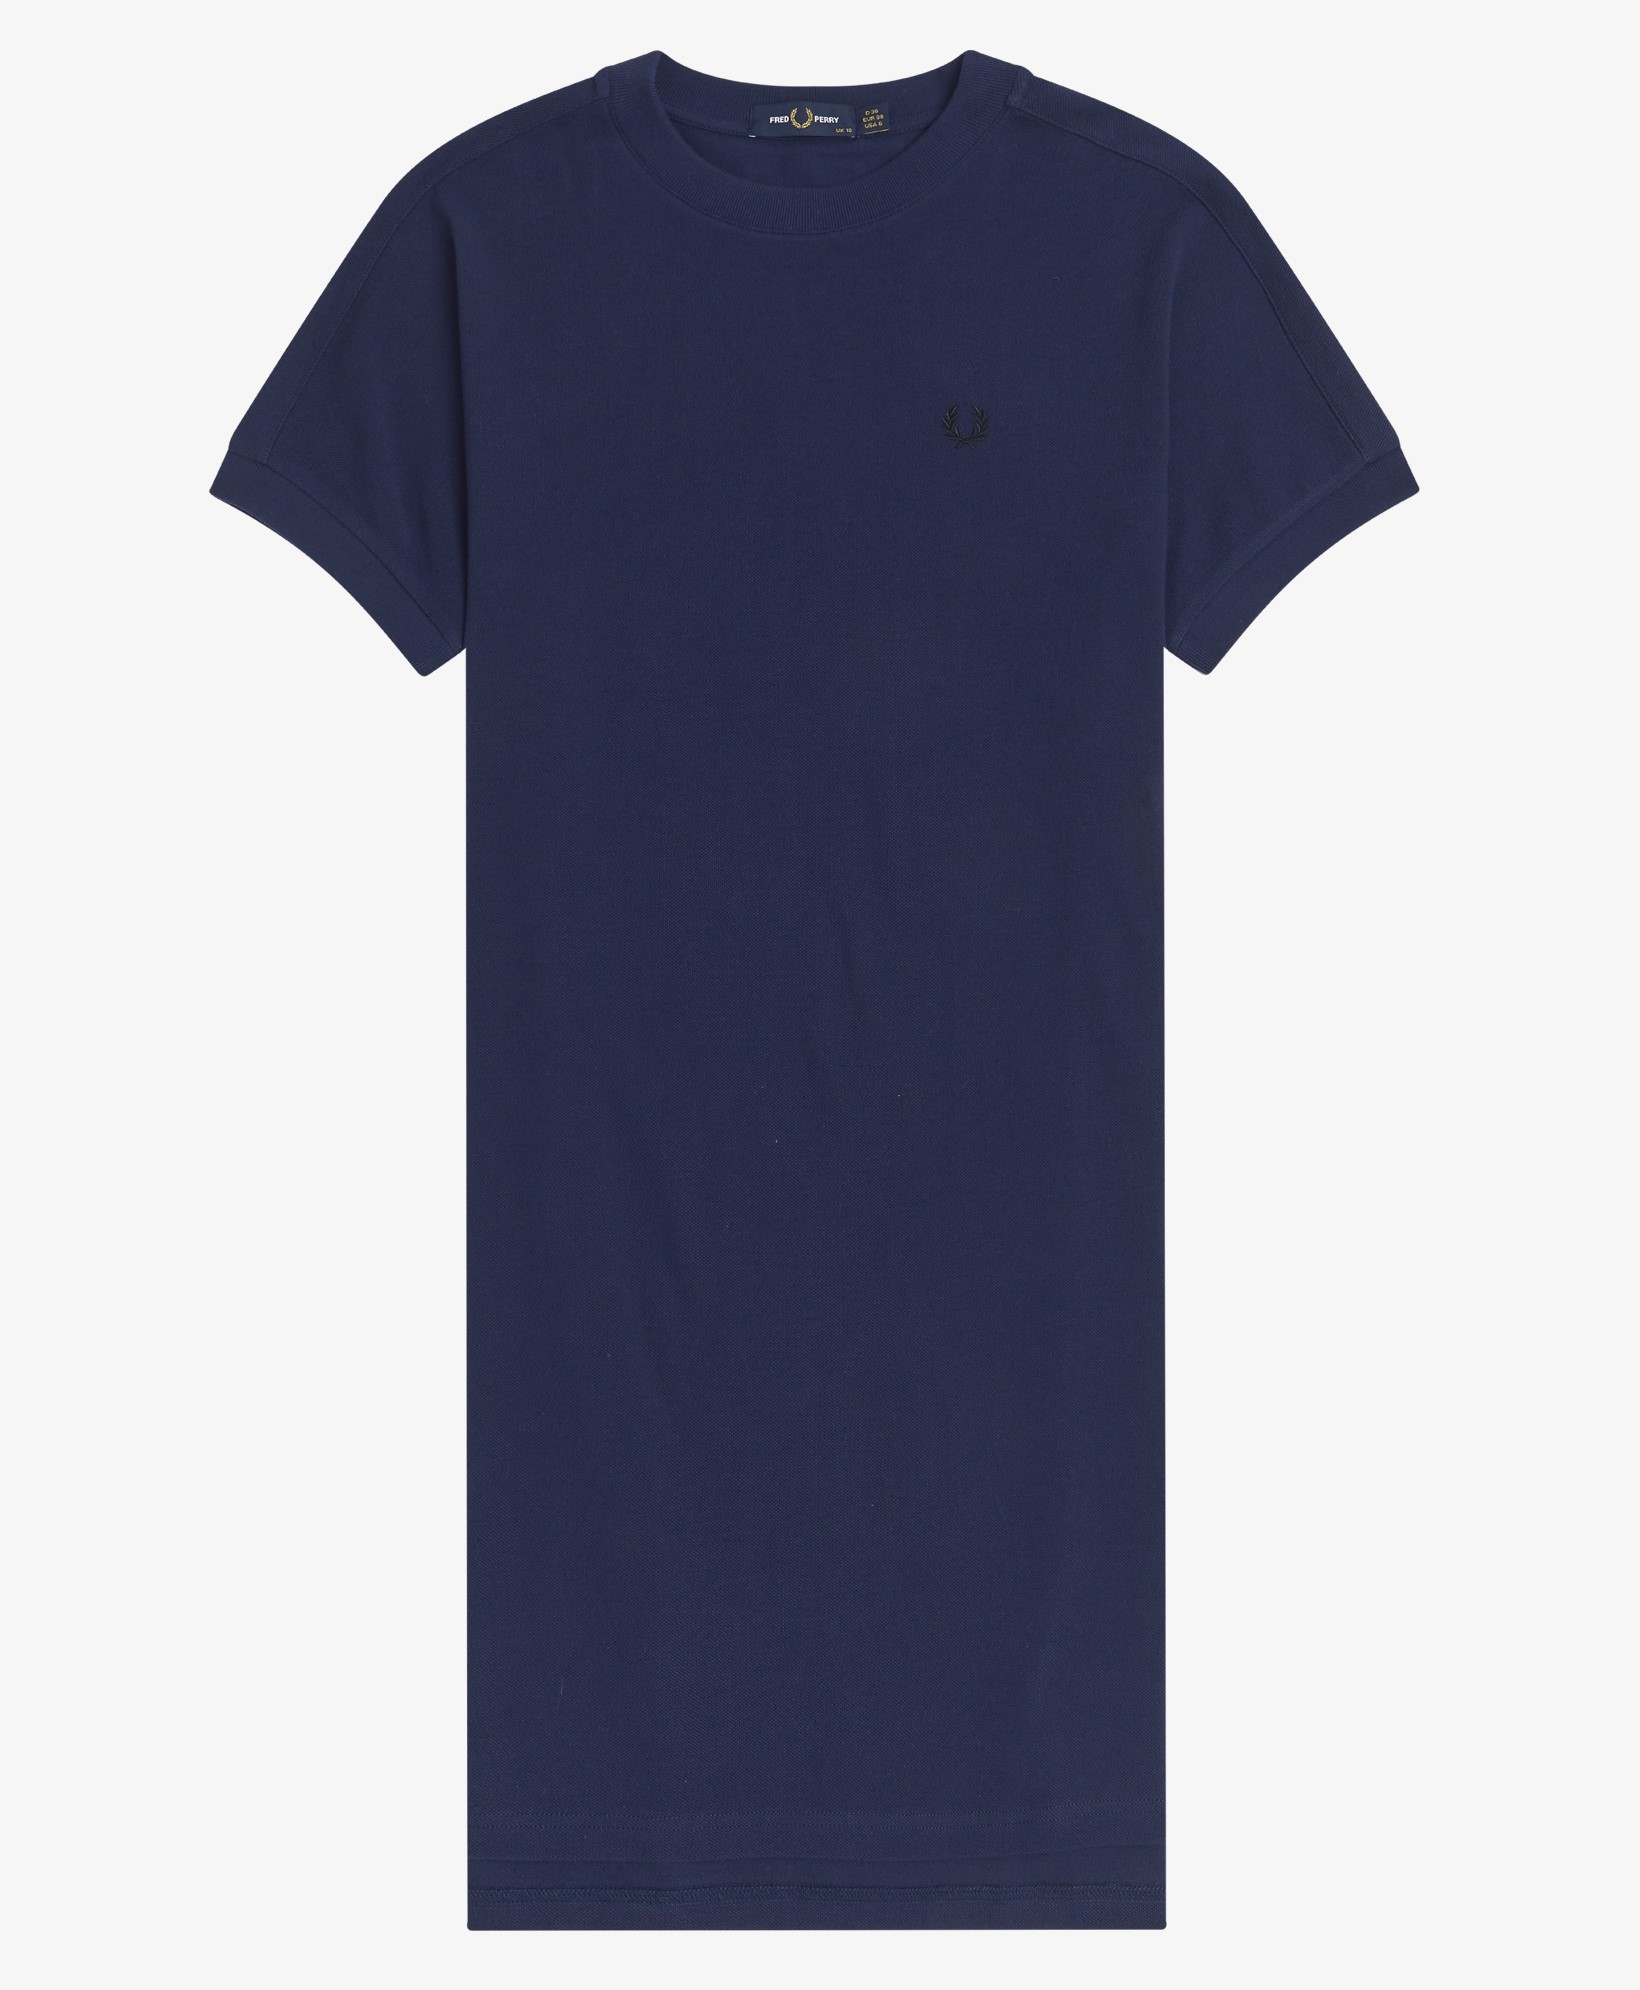 Fred Perry - BOXY PIQUE T-SHIRT DRESS - Carbon Blue